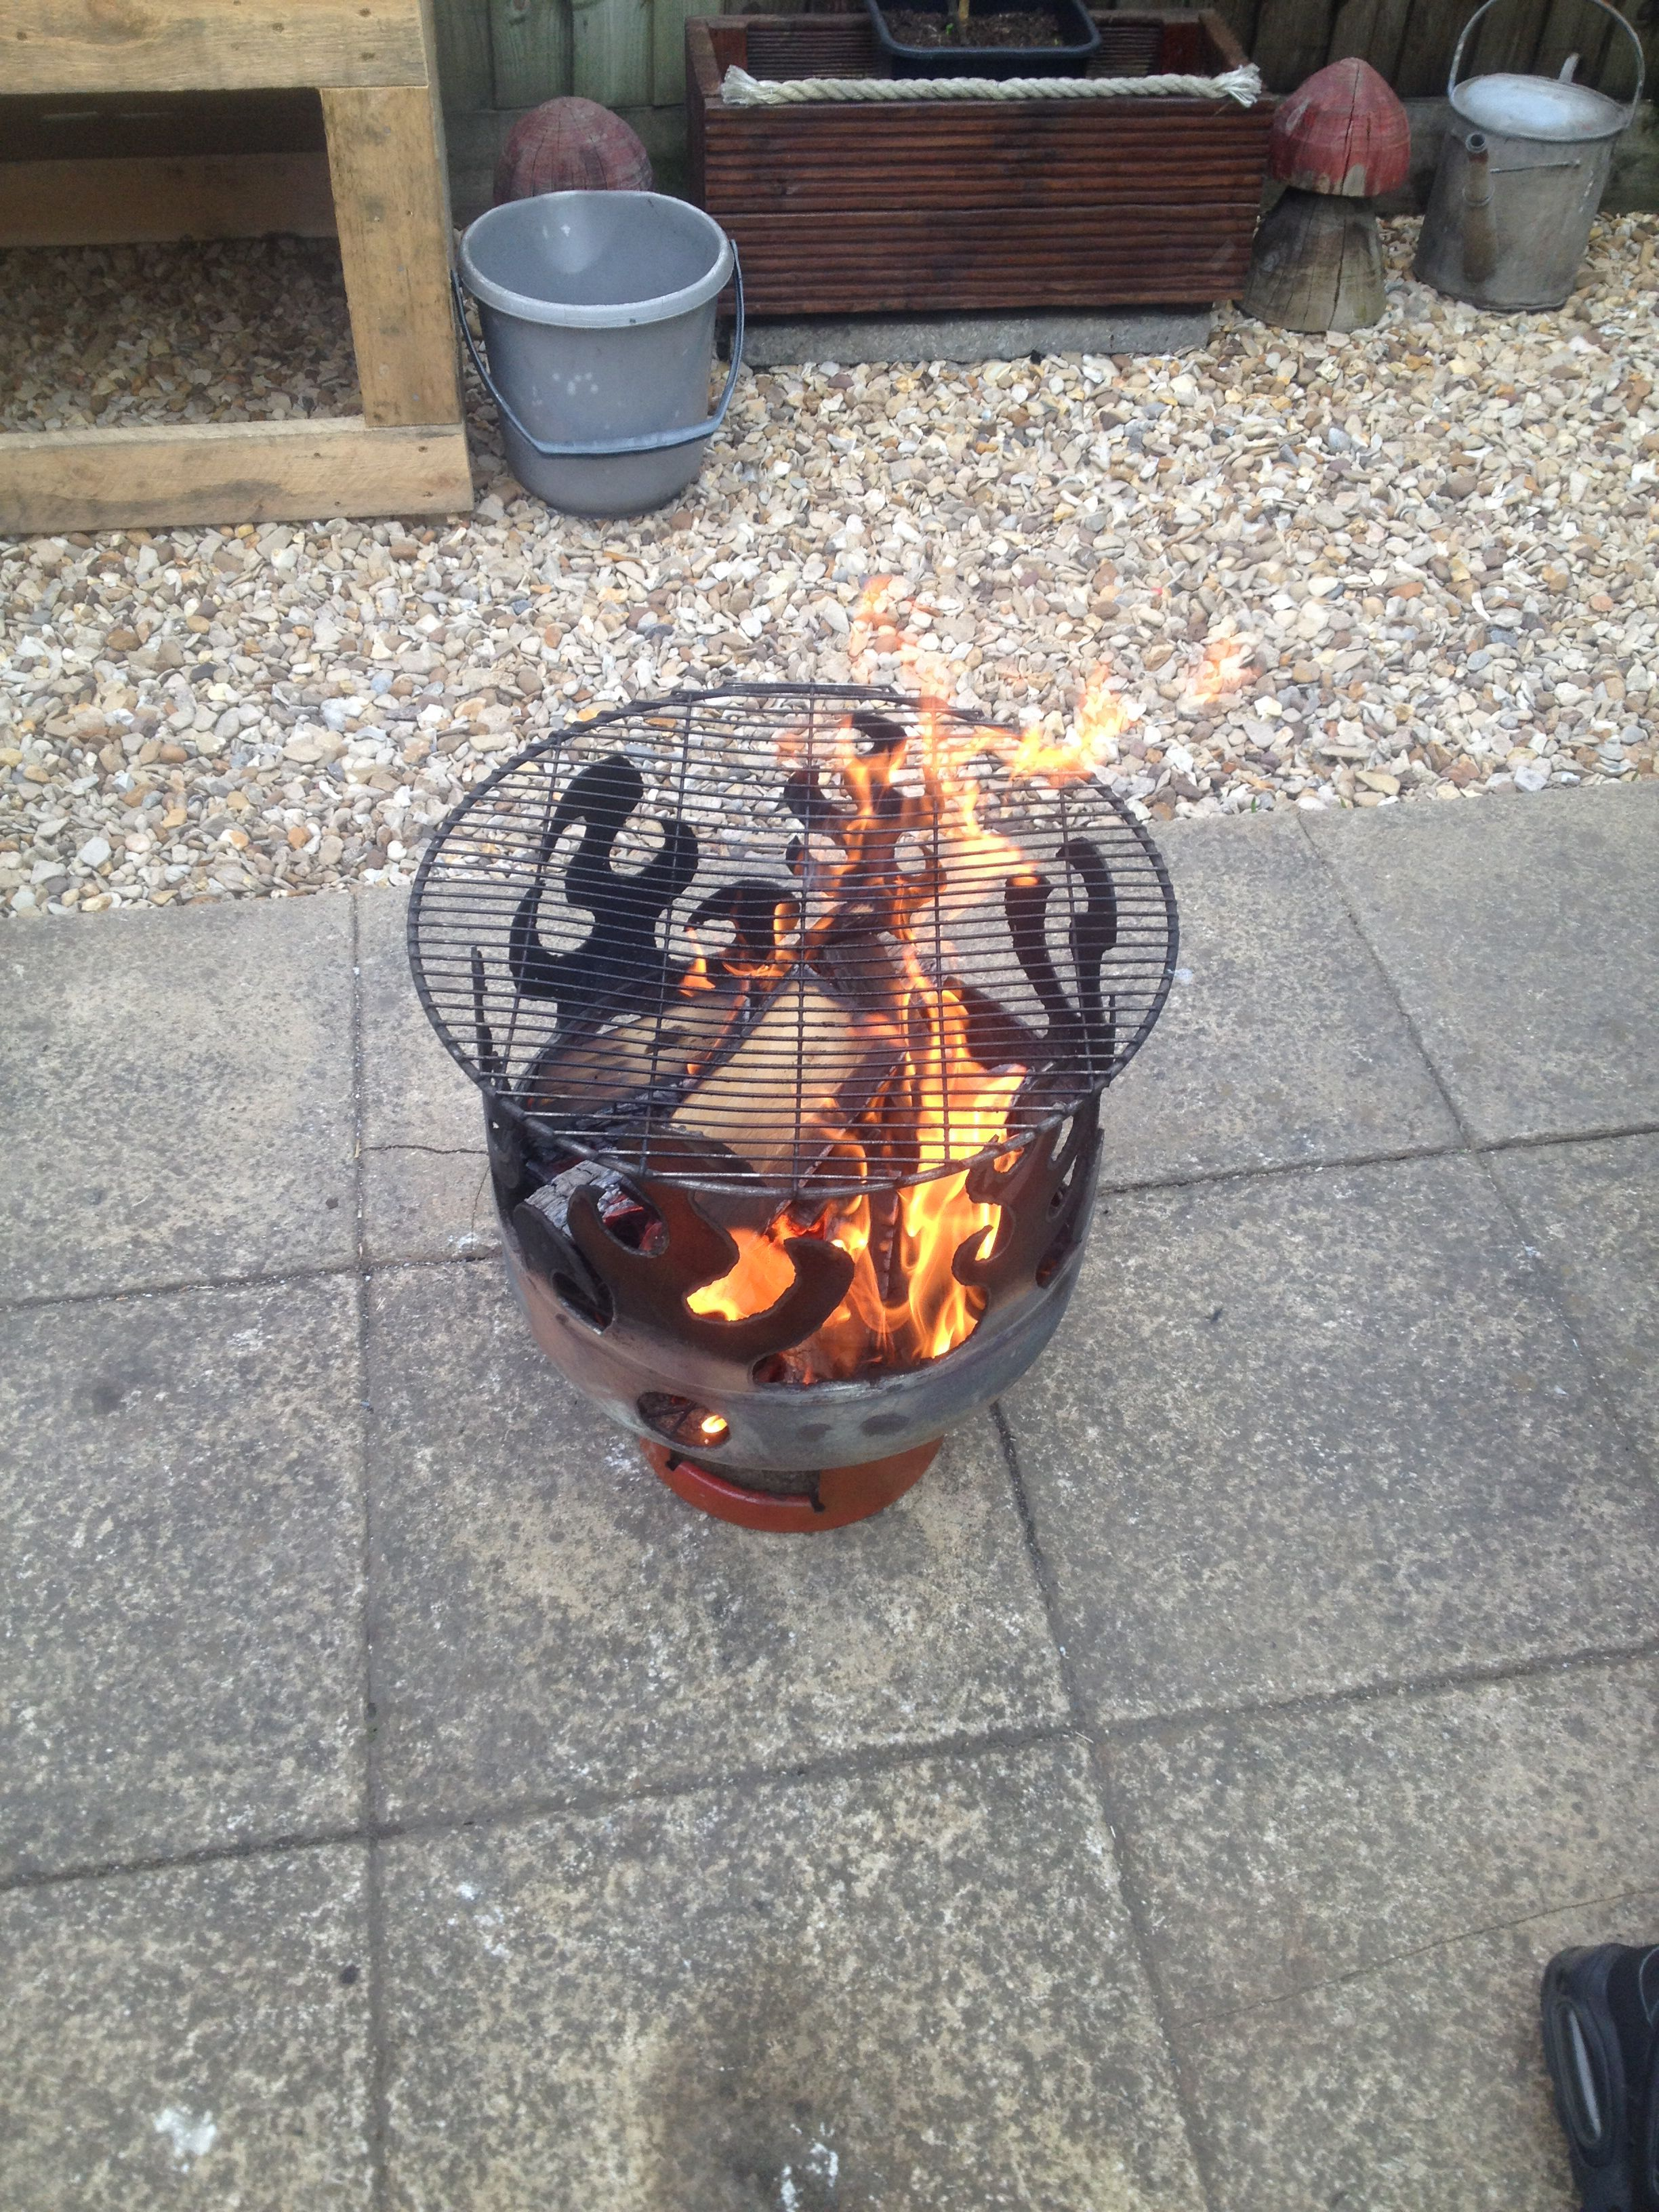 Fire Pit Bbq Made From Old Gas Bottles Fire Pit Fire Pit Bbq Gas